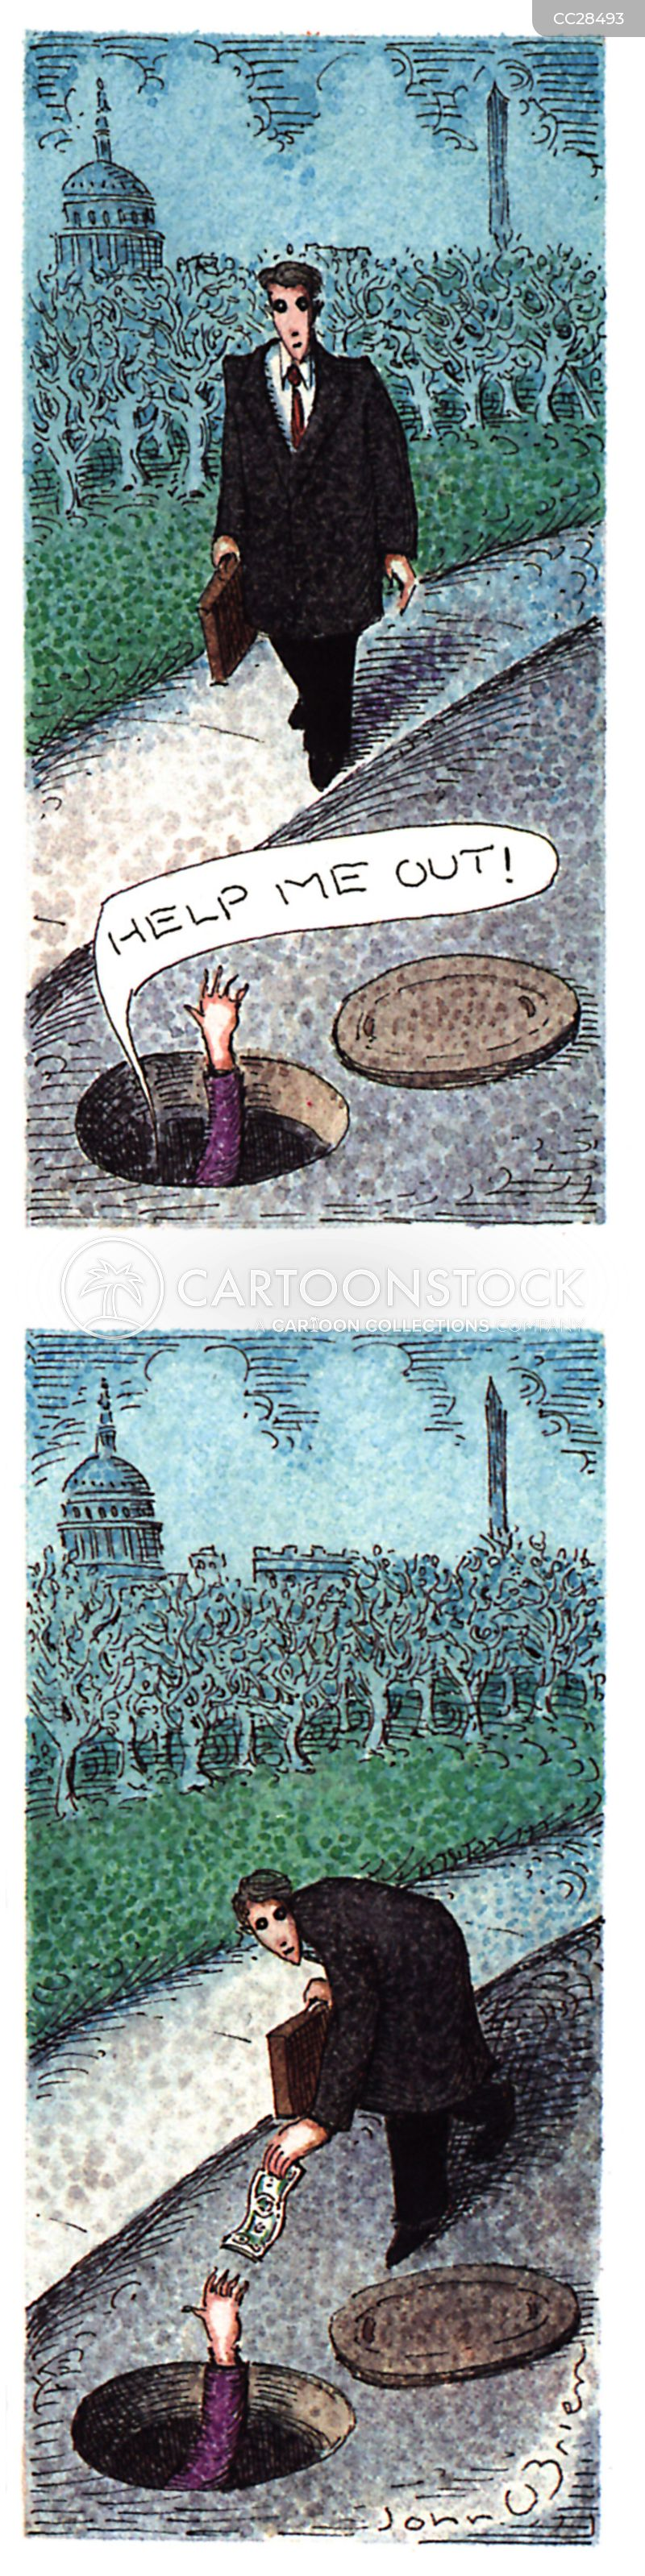 Drain-holes cartoon